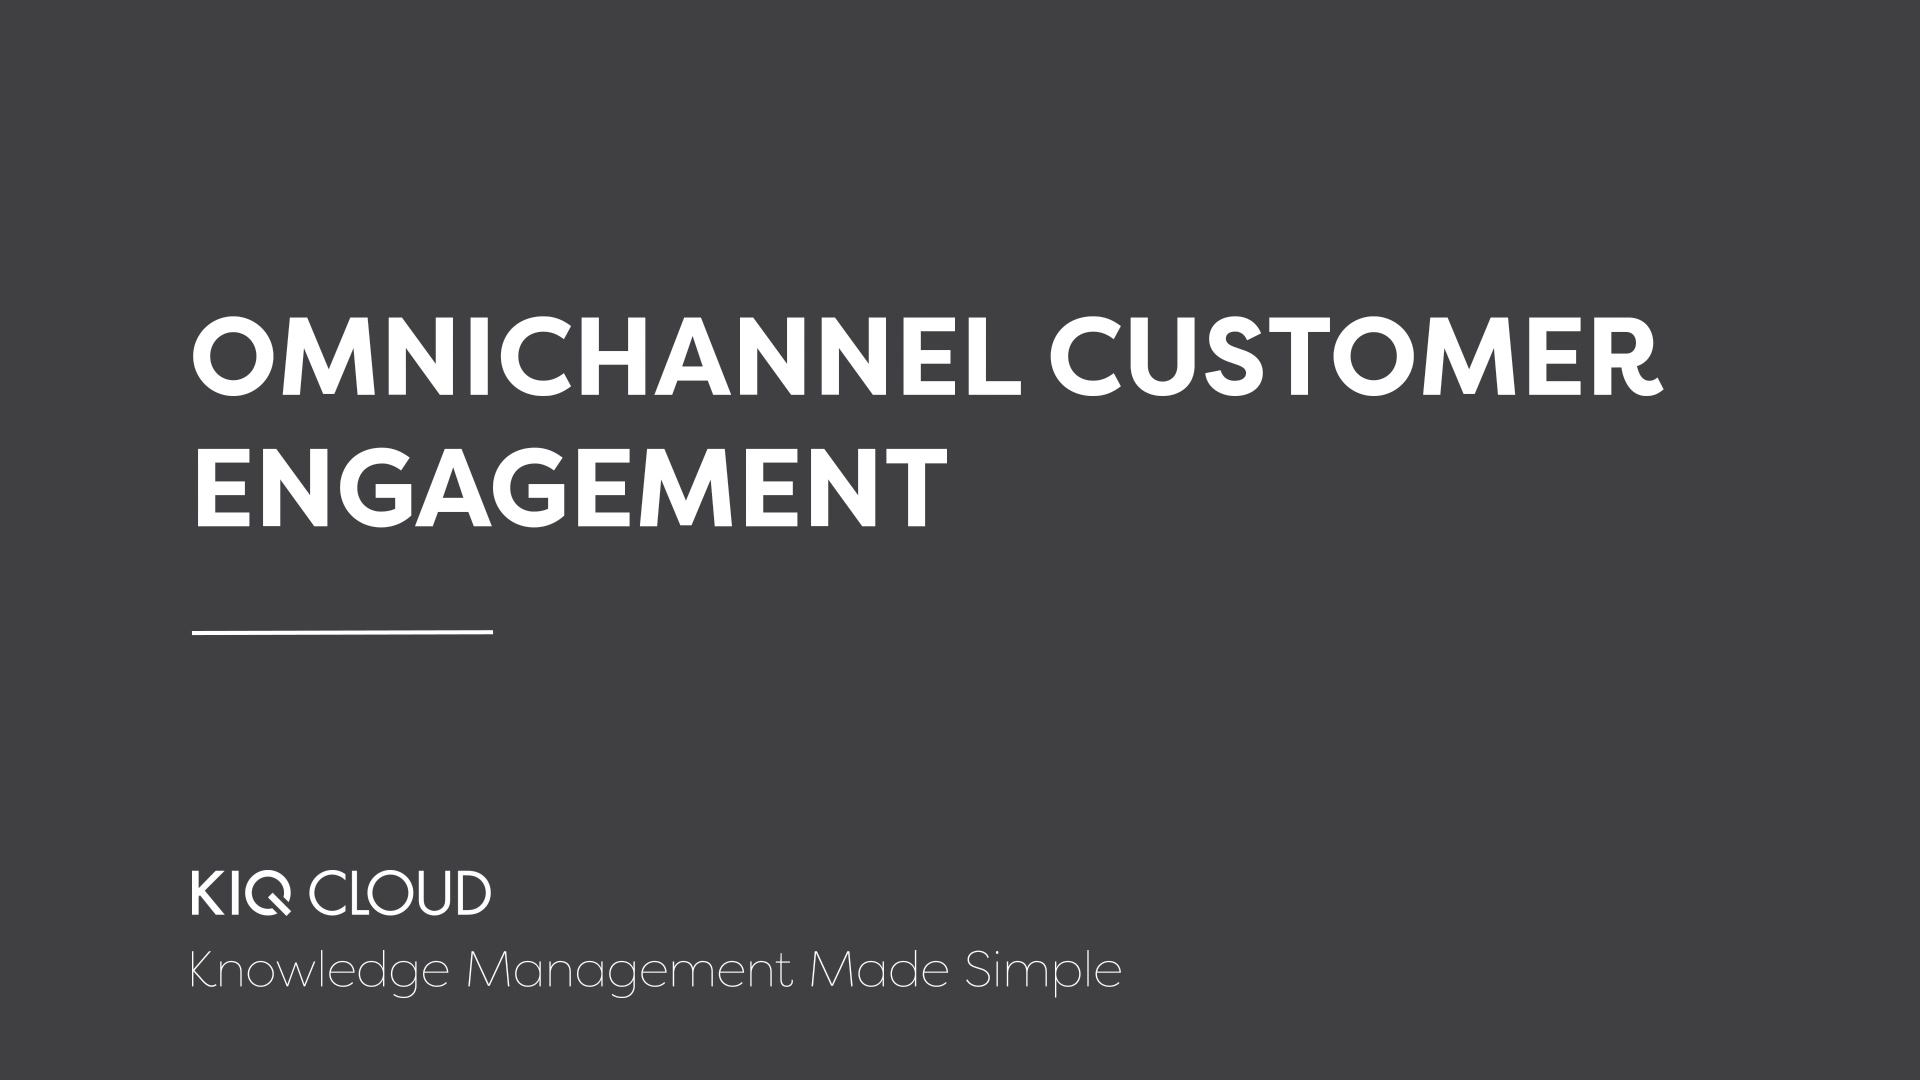 4. Omnichannel Customer Engagement